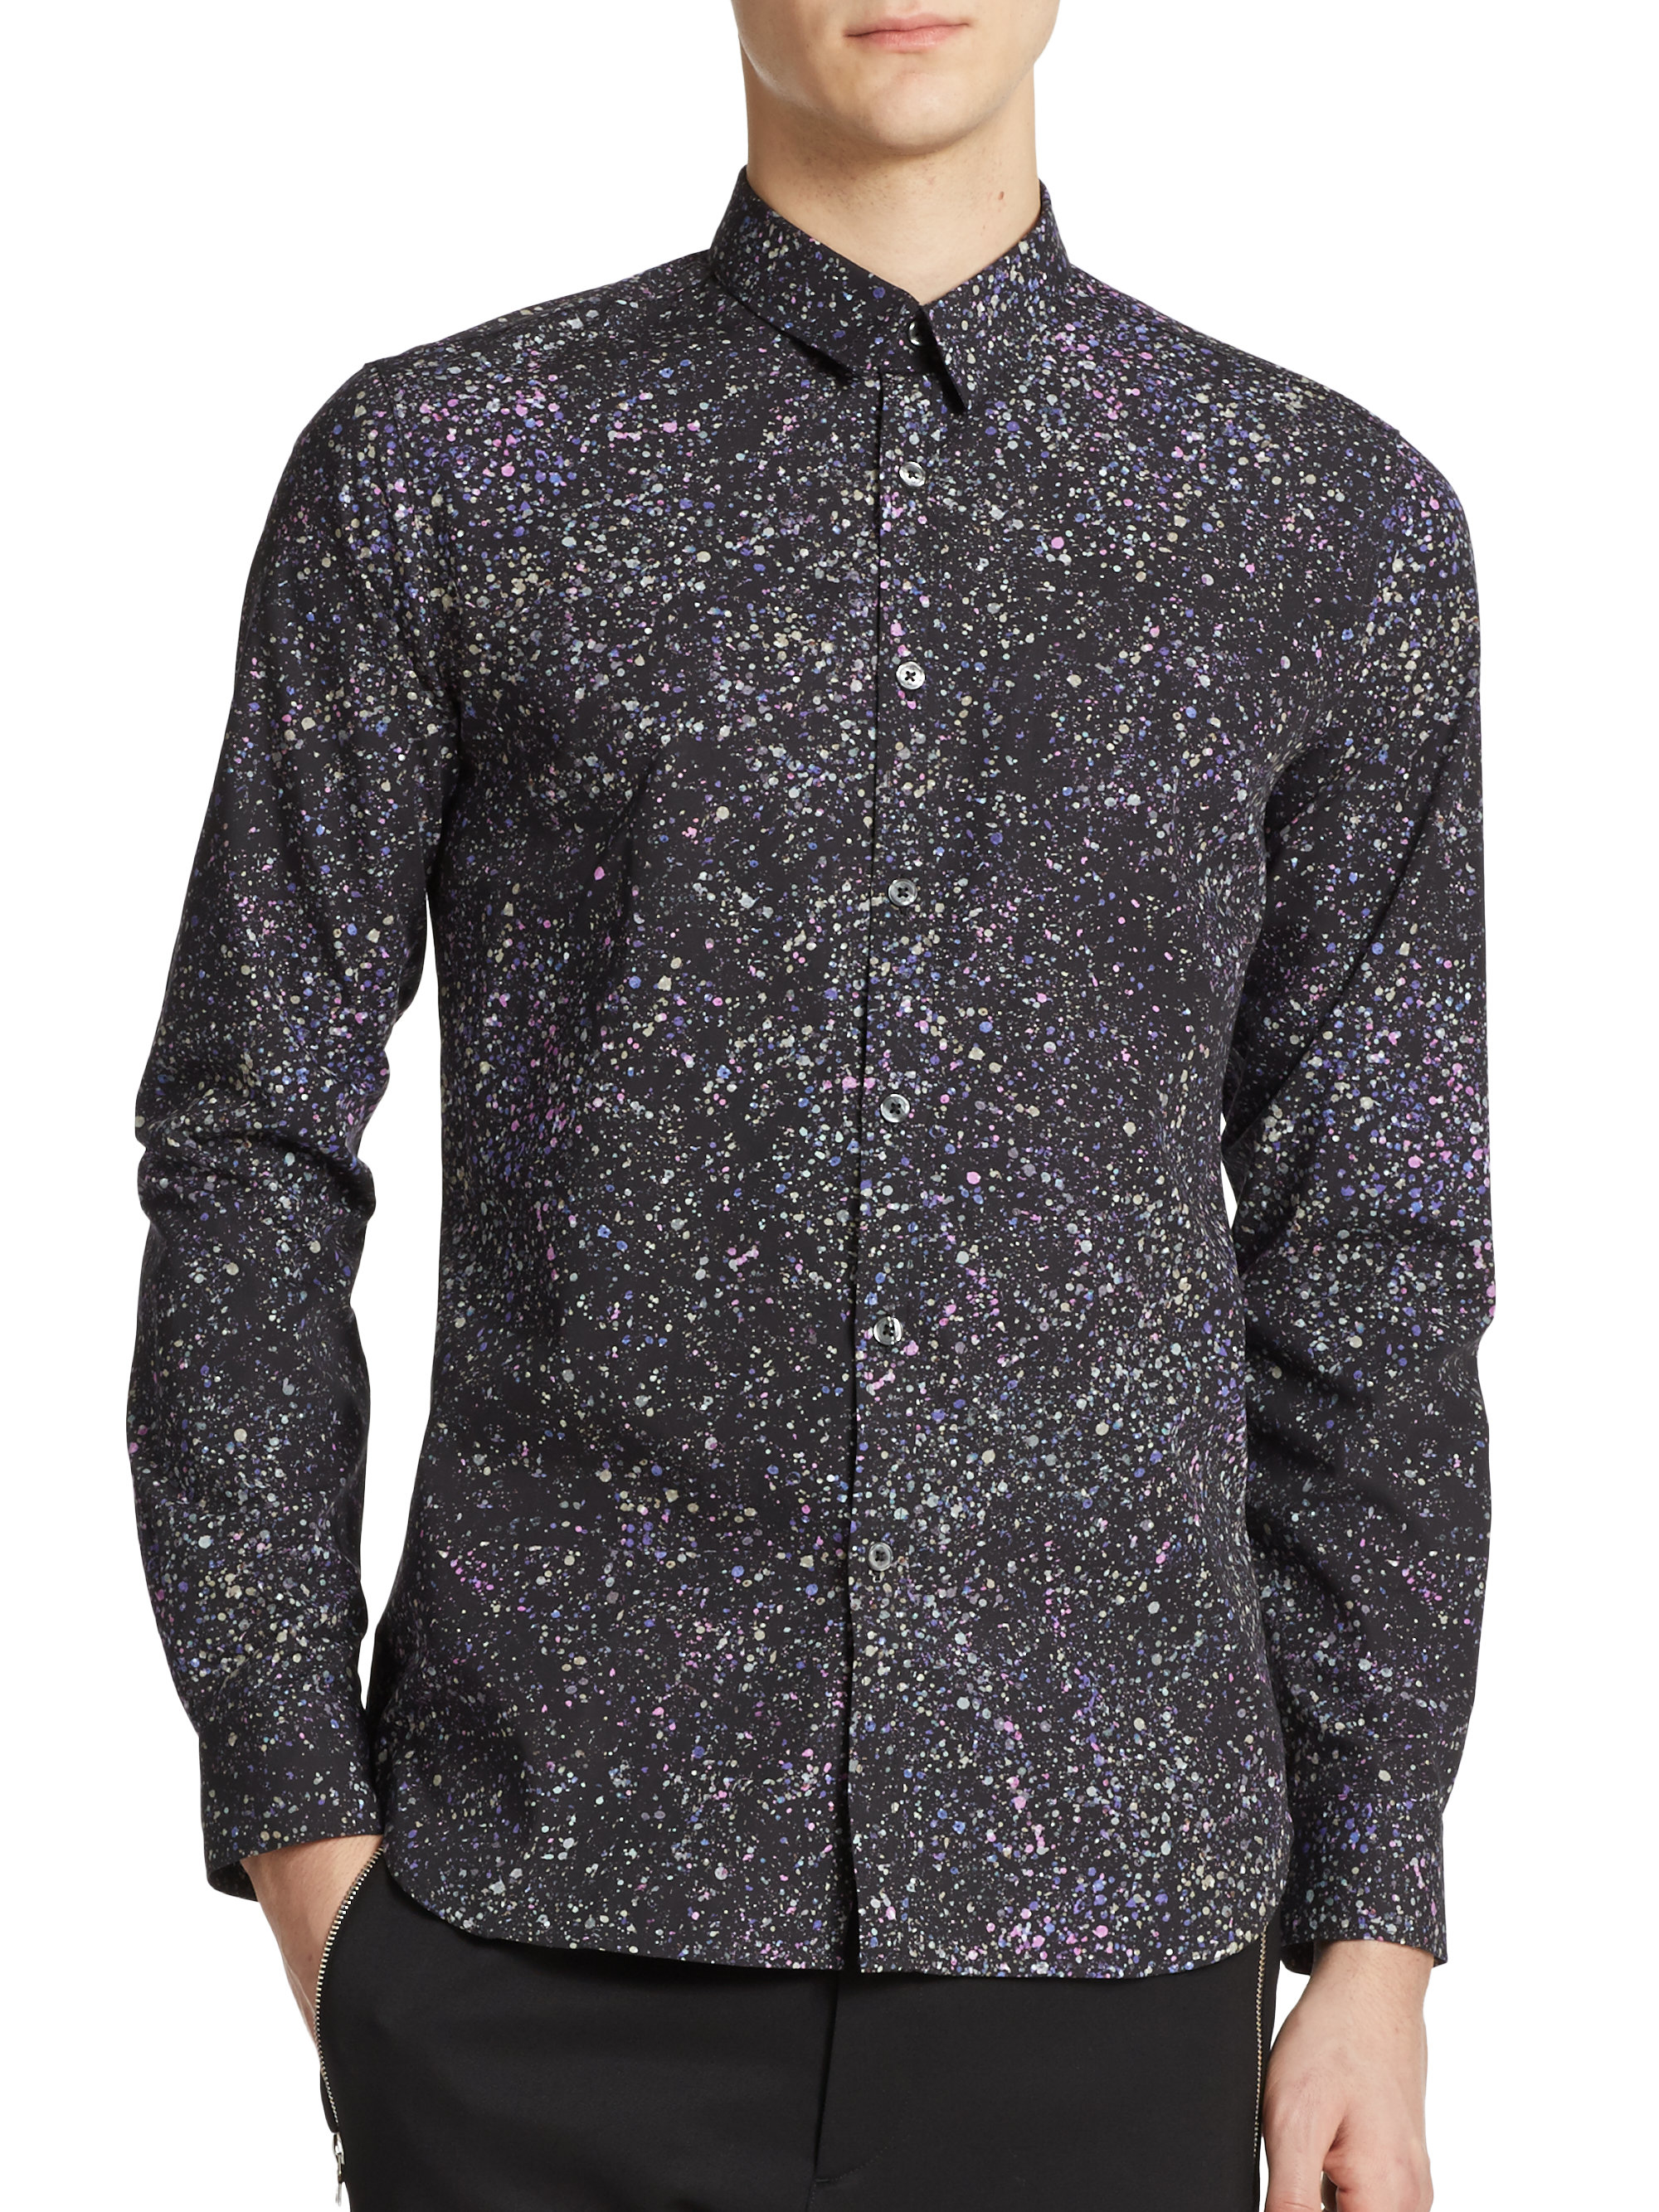 Ps by paul smith Galaxy Print Button-down Shirt in Gray for Men | Lyst